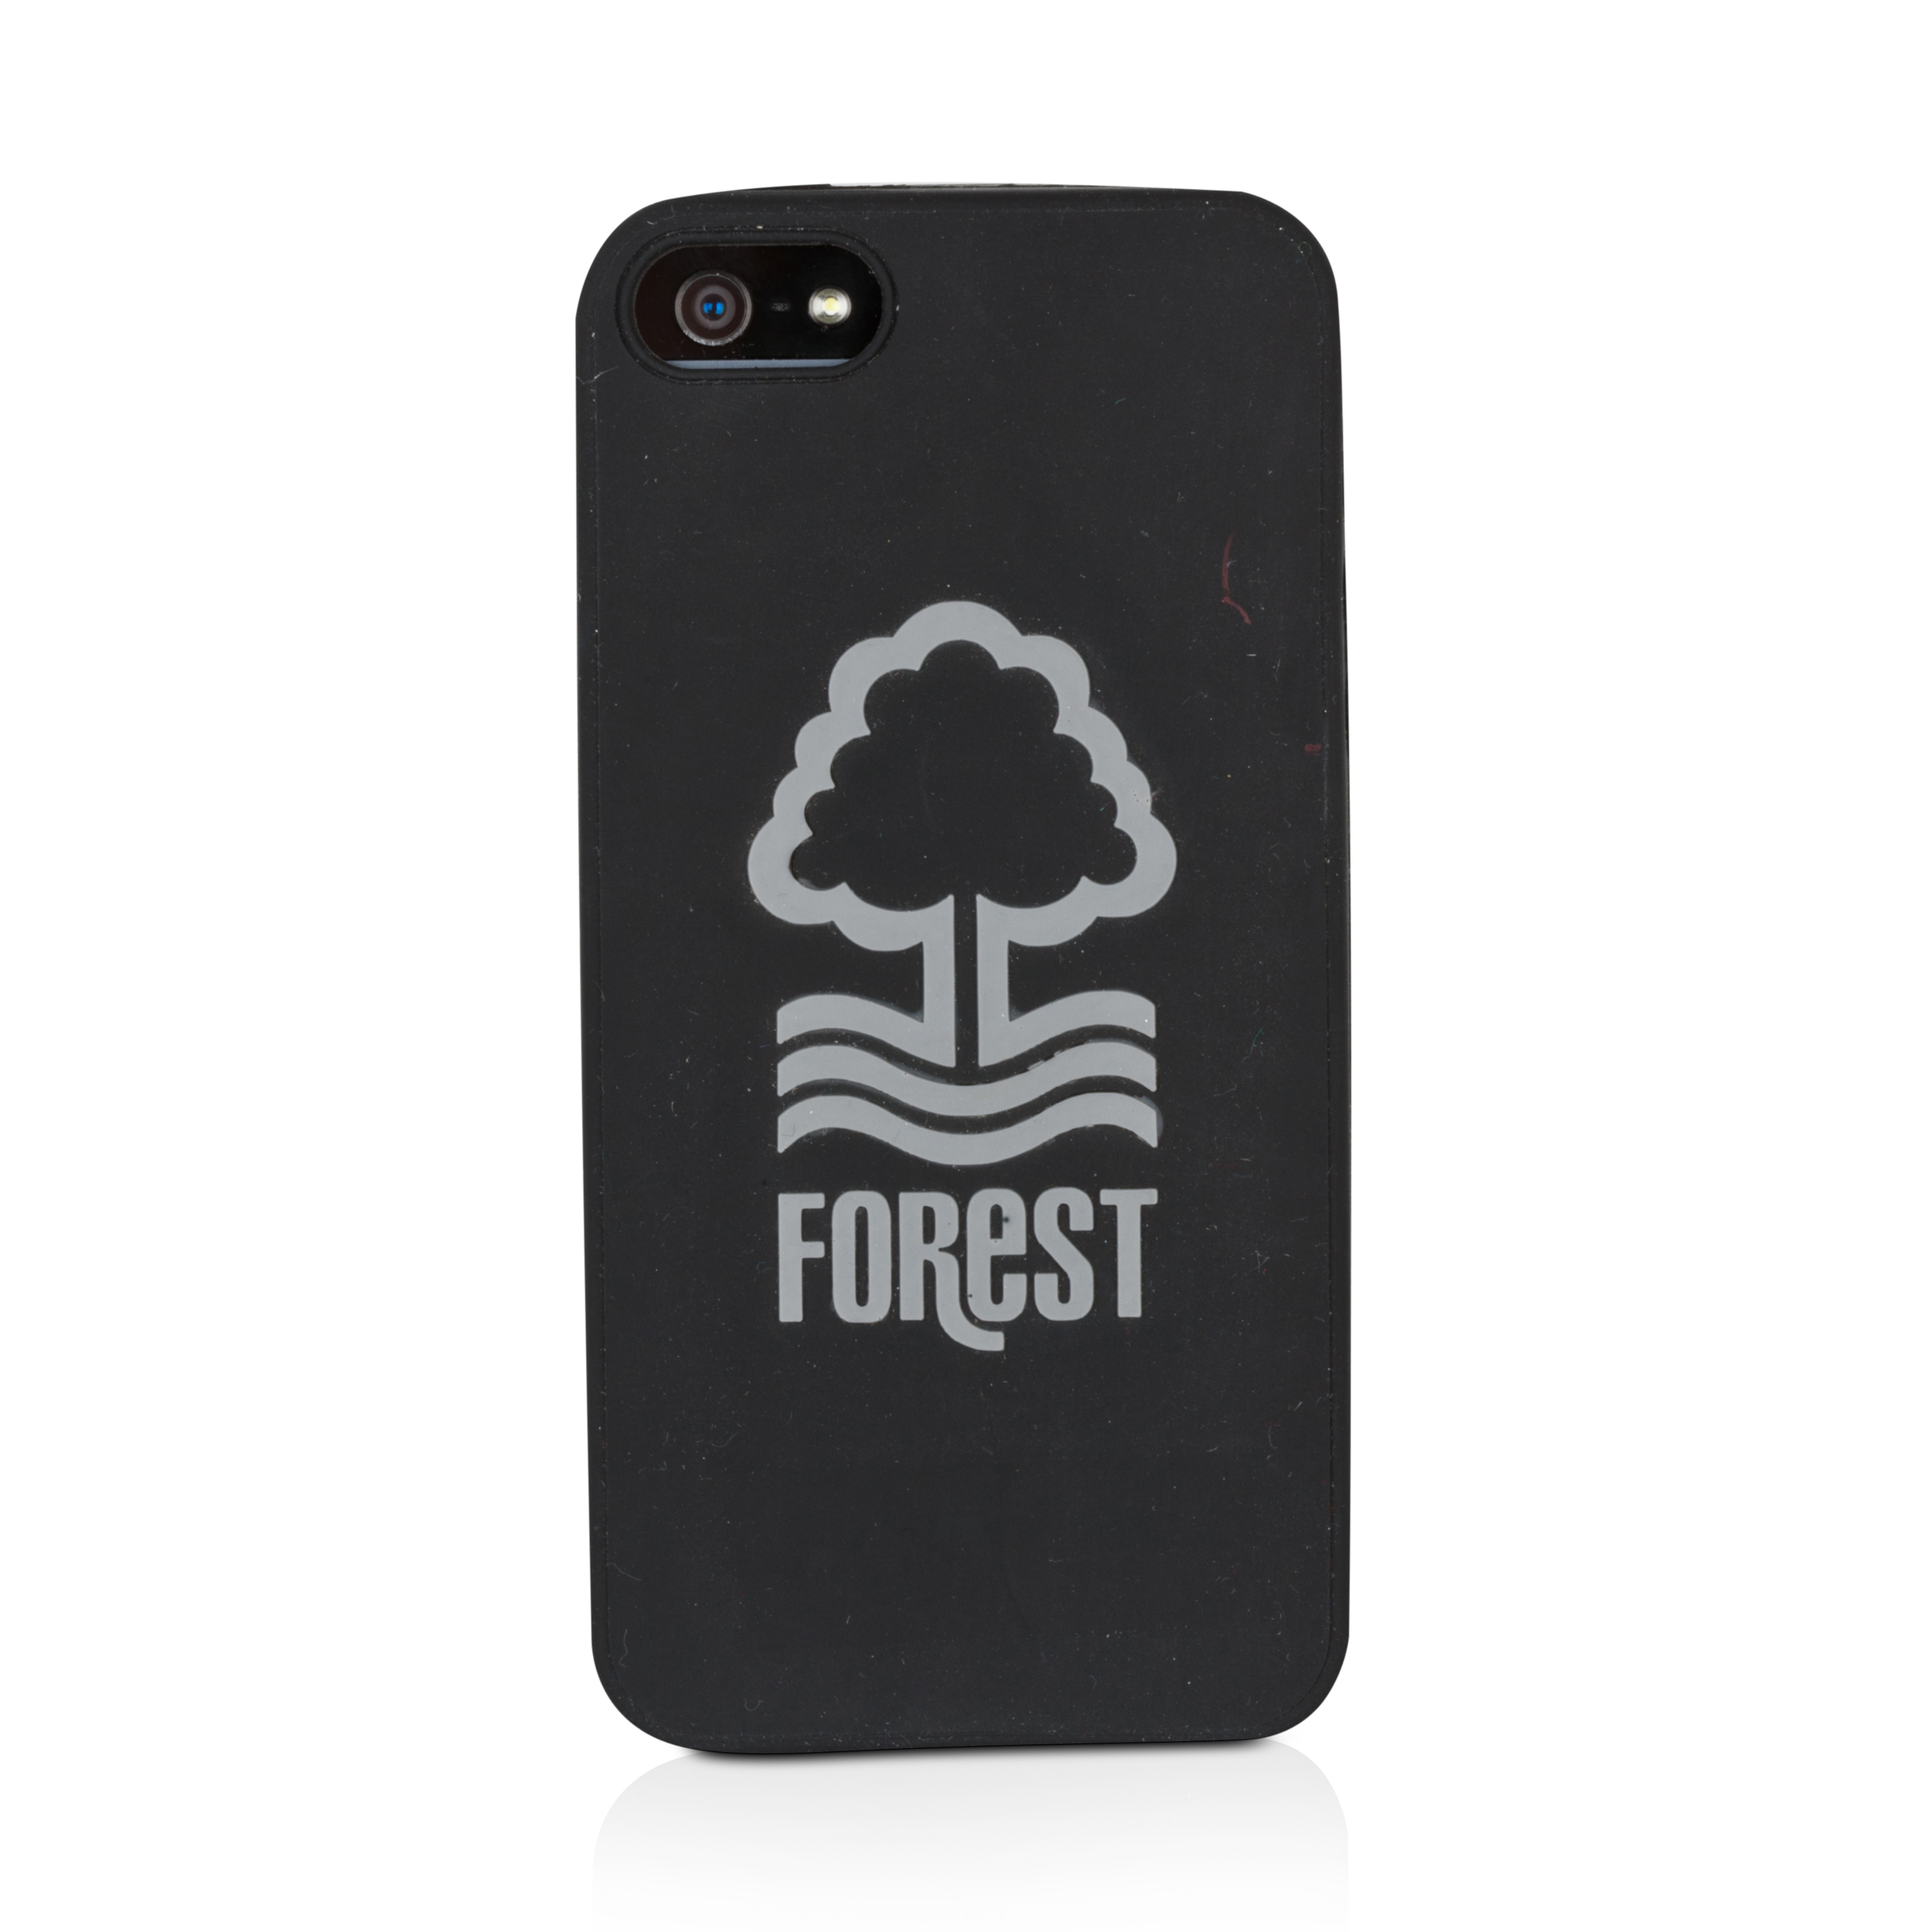 Nottingham Forest Crest iphone 5th Generation Silicon Skin